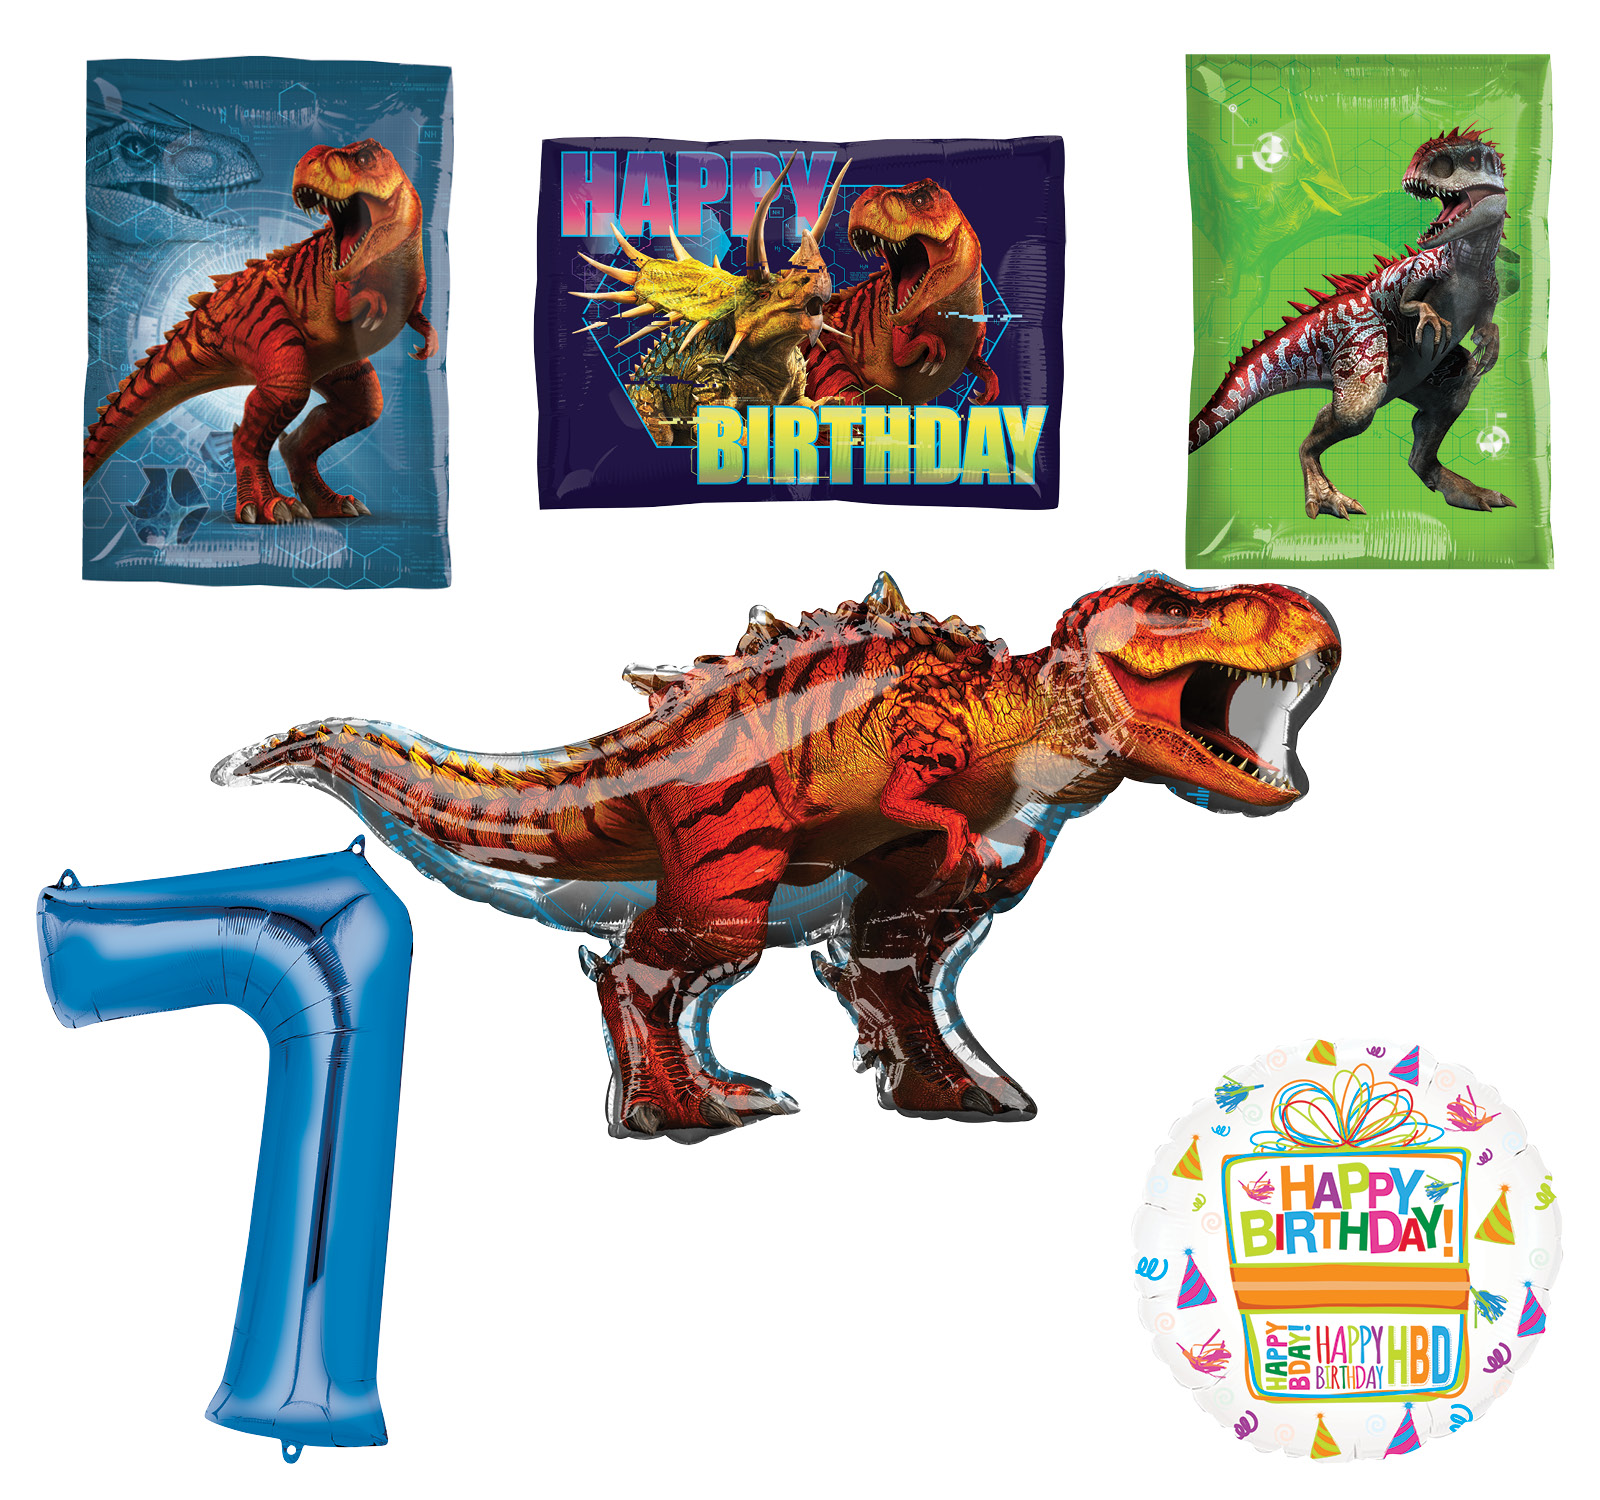 Jurassic World Dinosaur 7th Birthday Party Supplies and Balloon Decorations